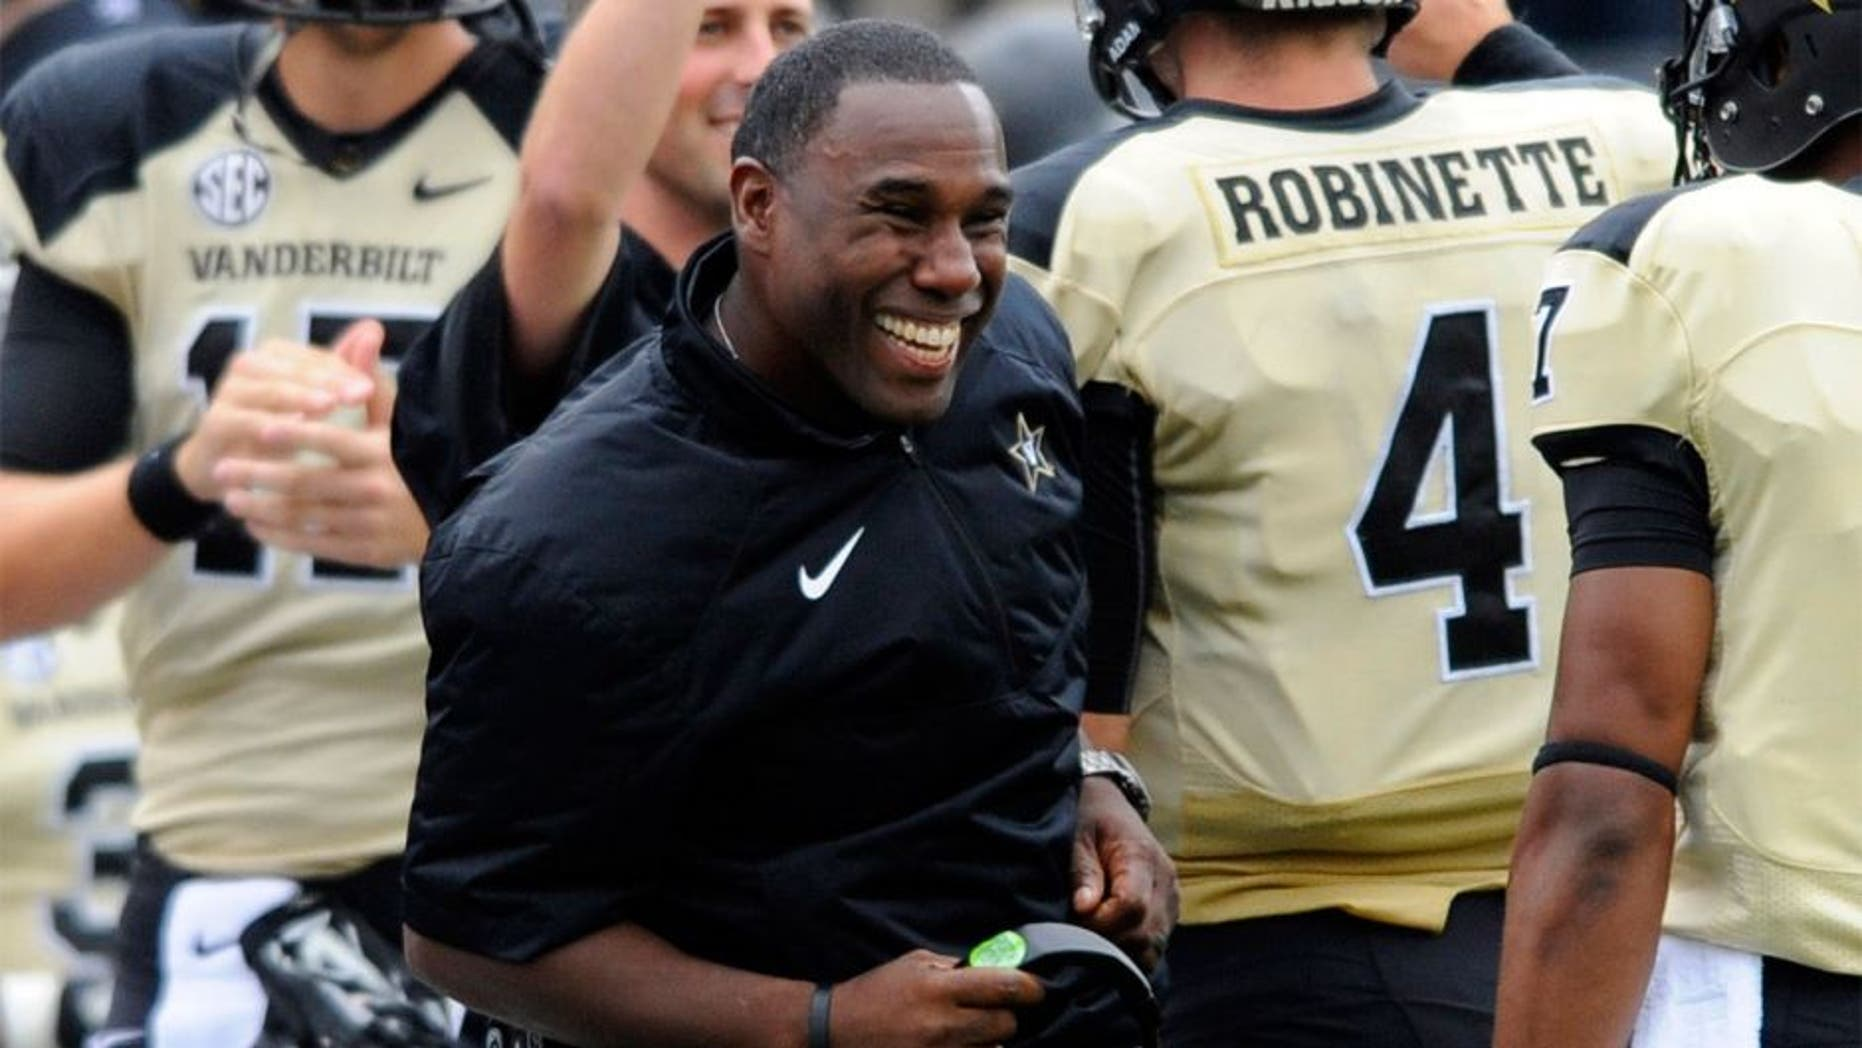 Sep 13, 2014; Nashville, TN, USA; Vanderbilt Commodores head coach Derek Mason celebrates after a touchdown during the first half against the Massachusetts Minutemen at Vanderbilt Stadium. Mandatory Credit: Christopher Hanewinckel-USA TODAY Sports